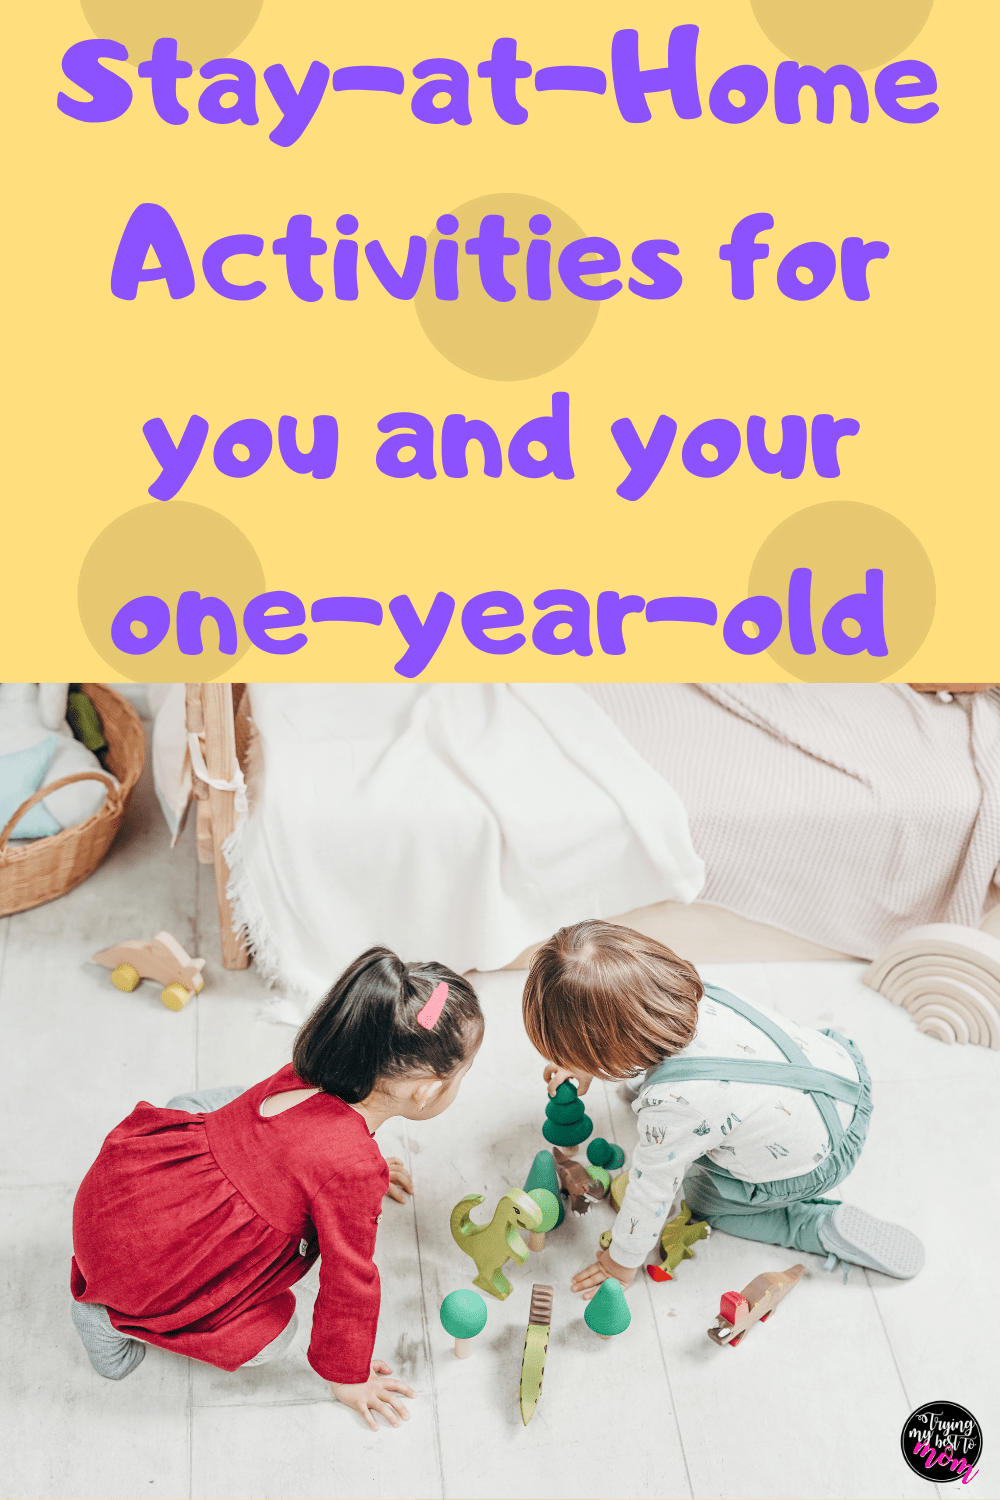 Stay-at-Home Activities for One Year Old Toddlers